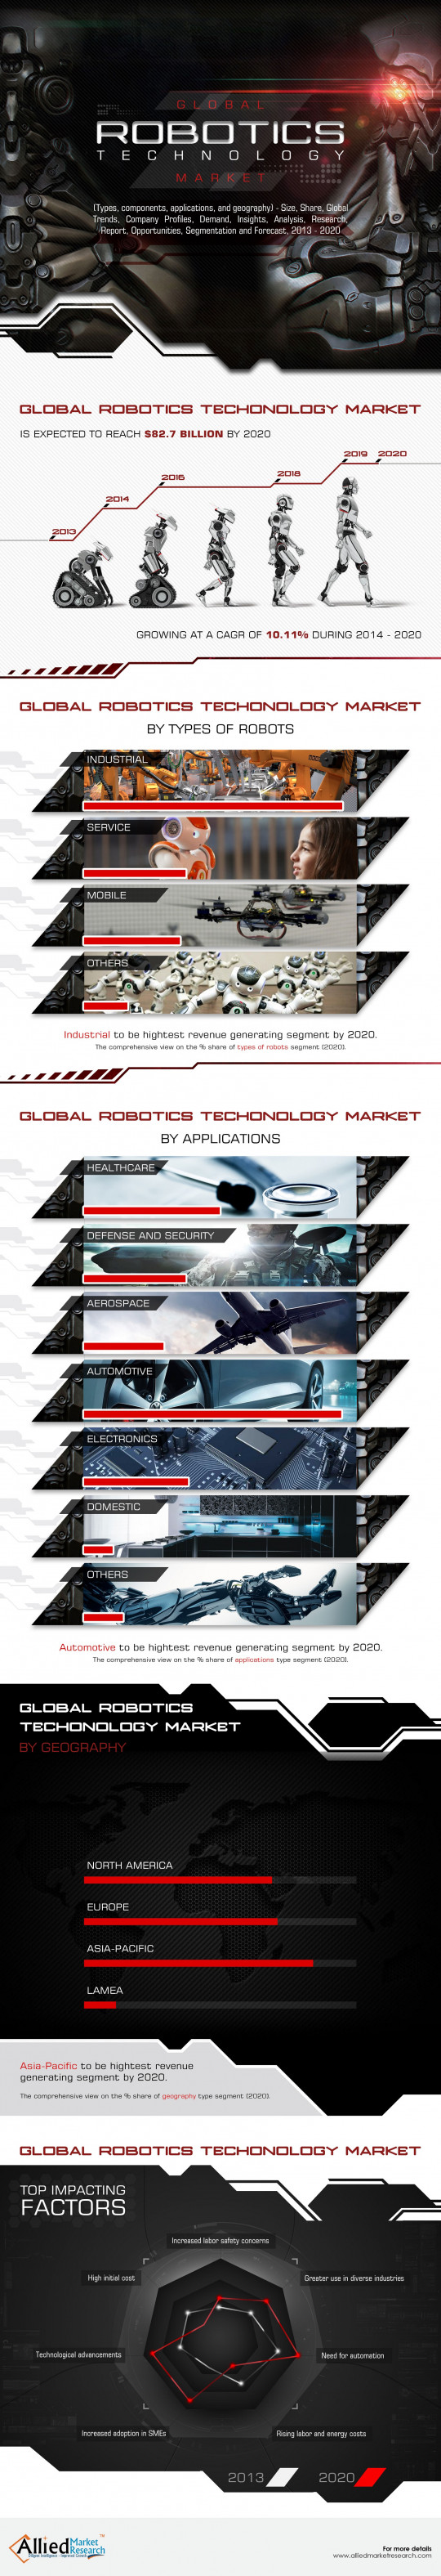 Global Robotics Technology Market (Types, Components and Geography) - Size, Share, Global Trends, Company Profiles, Demand, Insights, Analysis, Research, Report, Opportunities, Segmentation and Forecast, 2014 - 2020